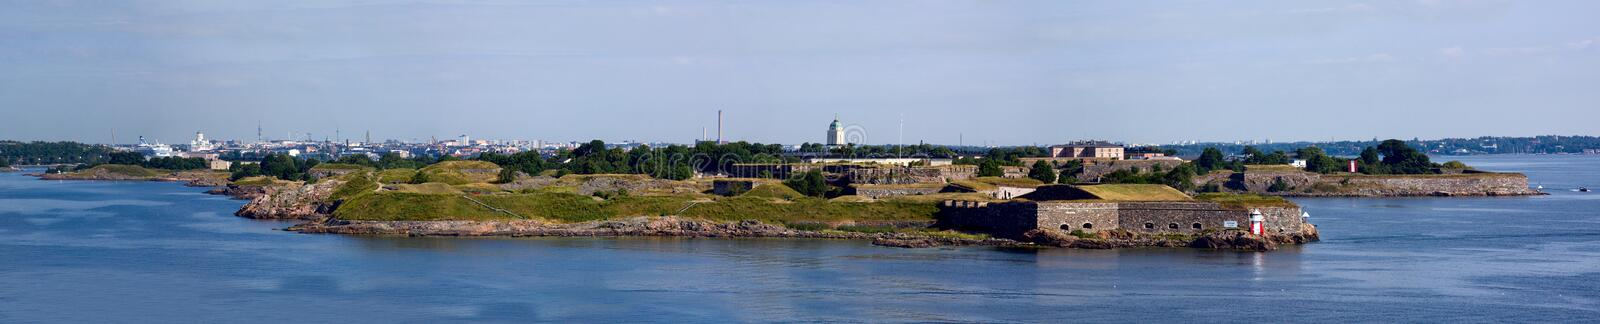 Panorama Of Fortress Of Suomenlinn In The Summer Stock Photo